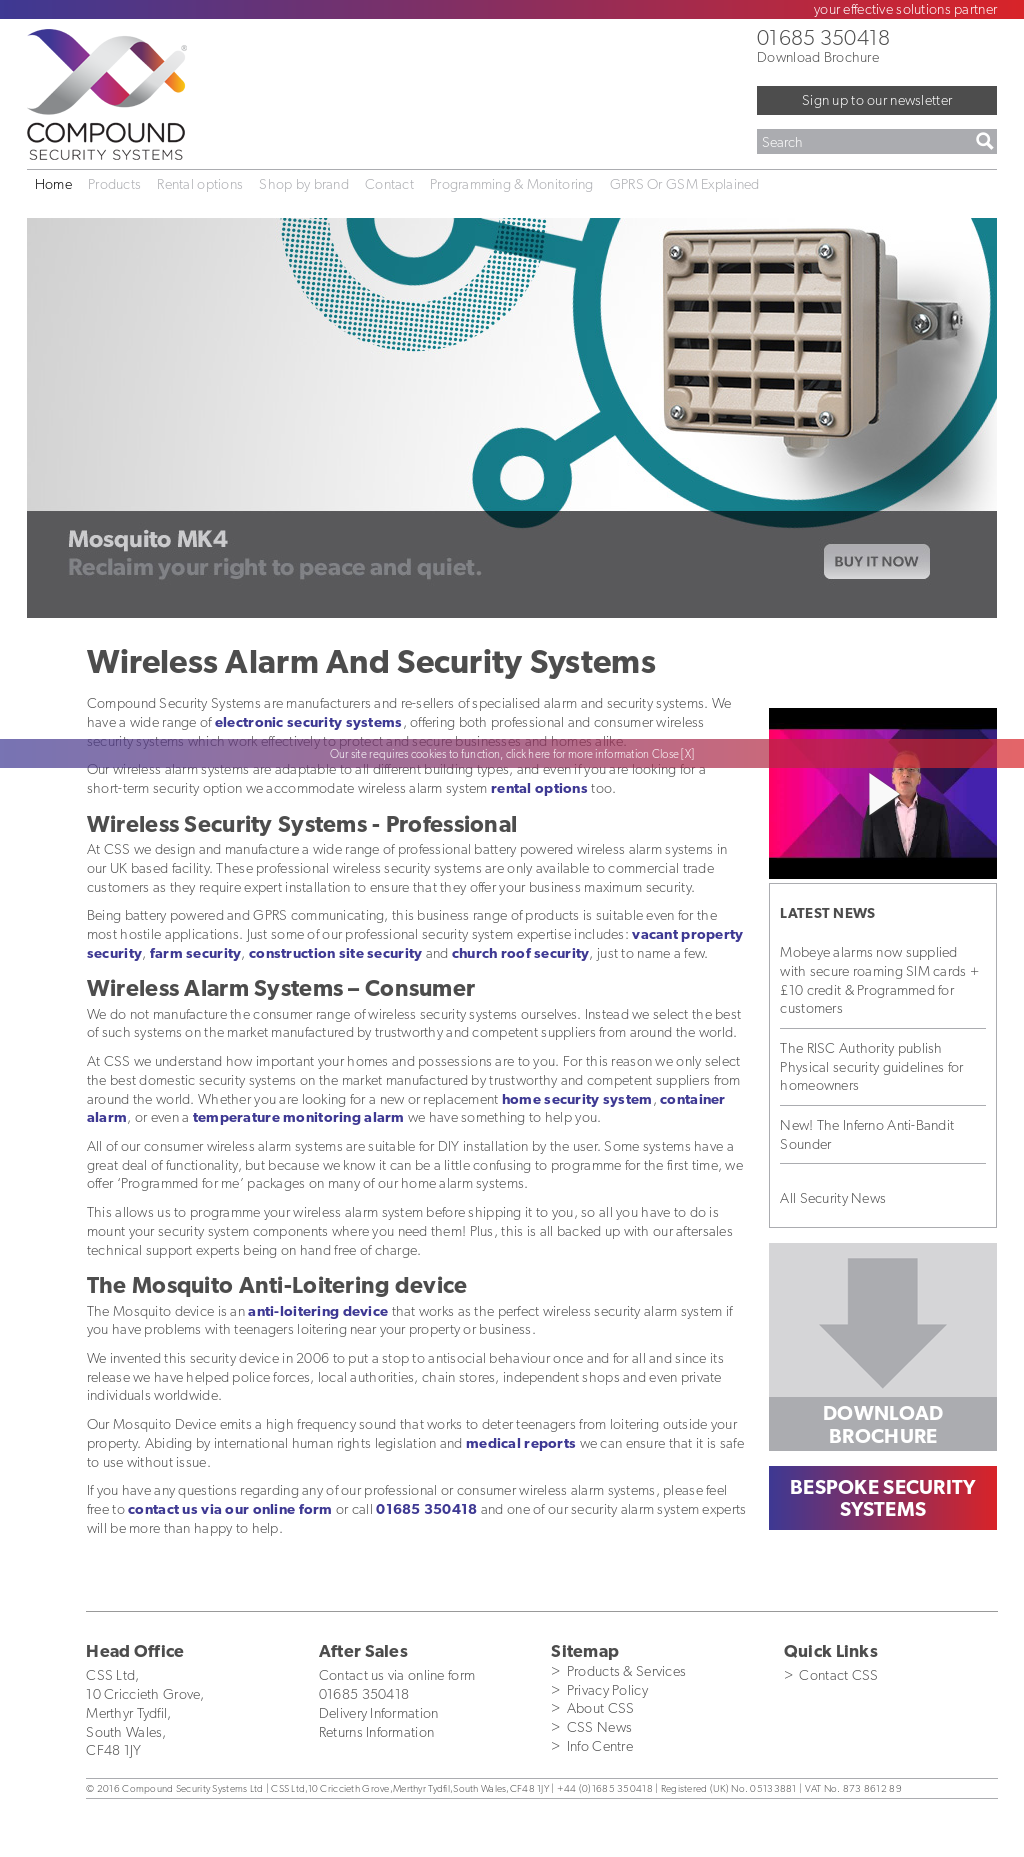 Compound Security Design : Compound security systems competitors revenue and